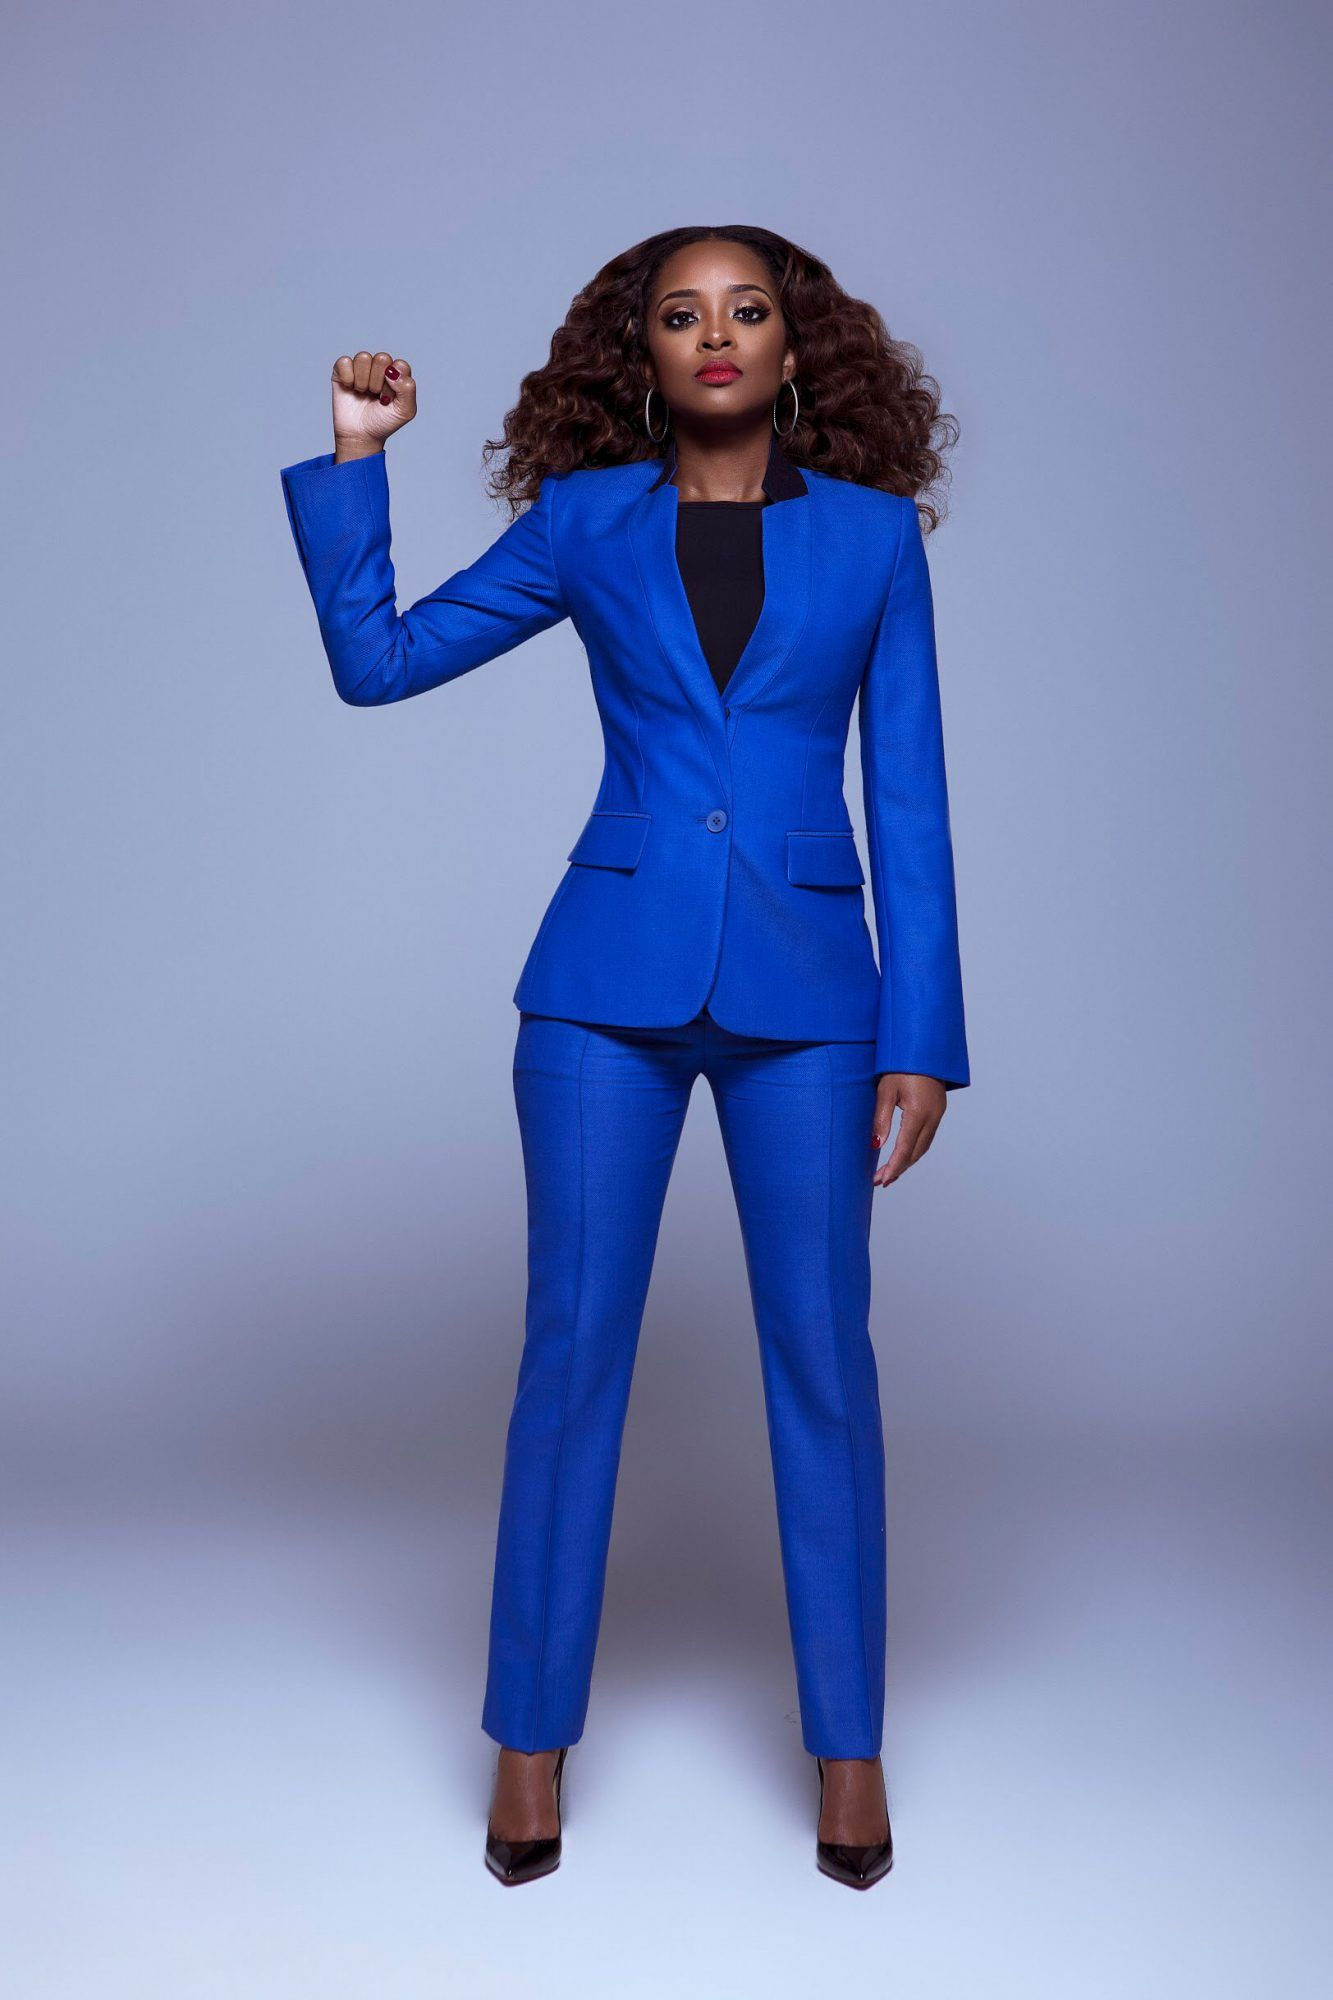 Tamika Mallory Will Not Stop Until There Is Justice For Breonna Taylor Street Style Women Pretty Black Girls Fashion